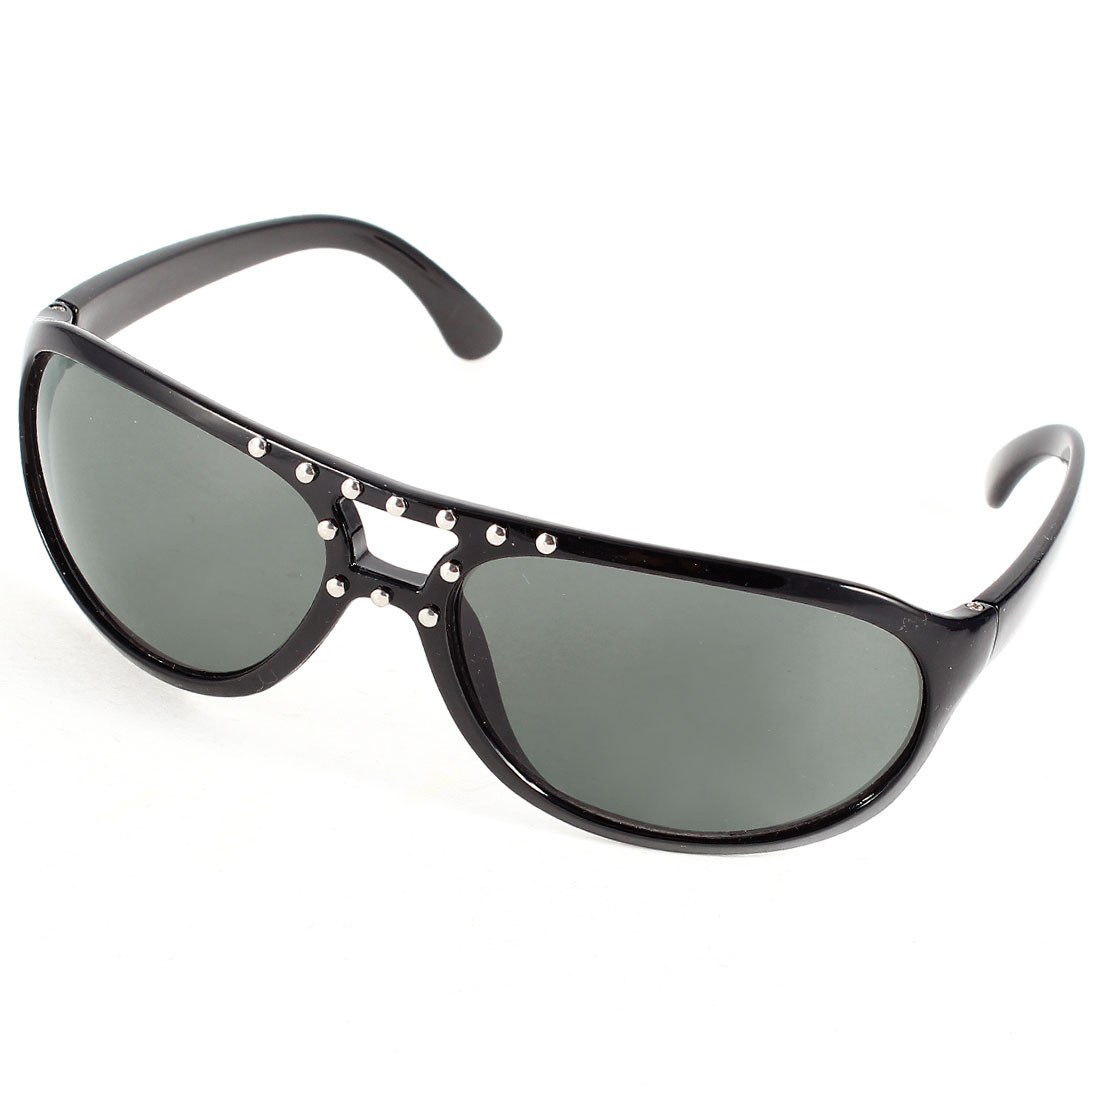 Rhinestuds Decor Plastic Full Frame Black Lens Sunglasses Glasses for Men